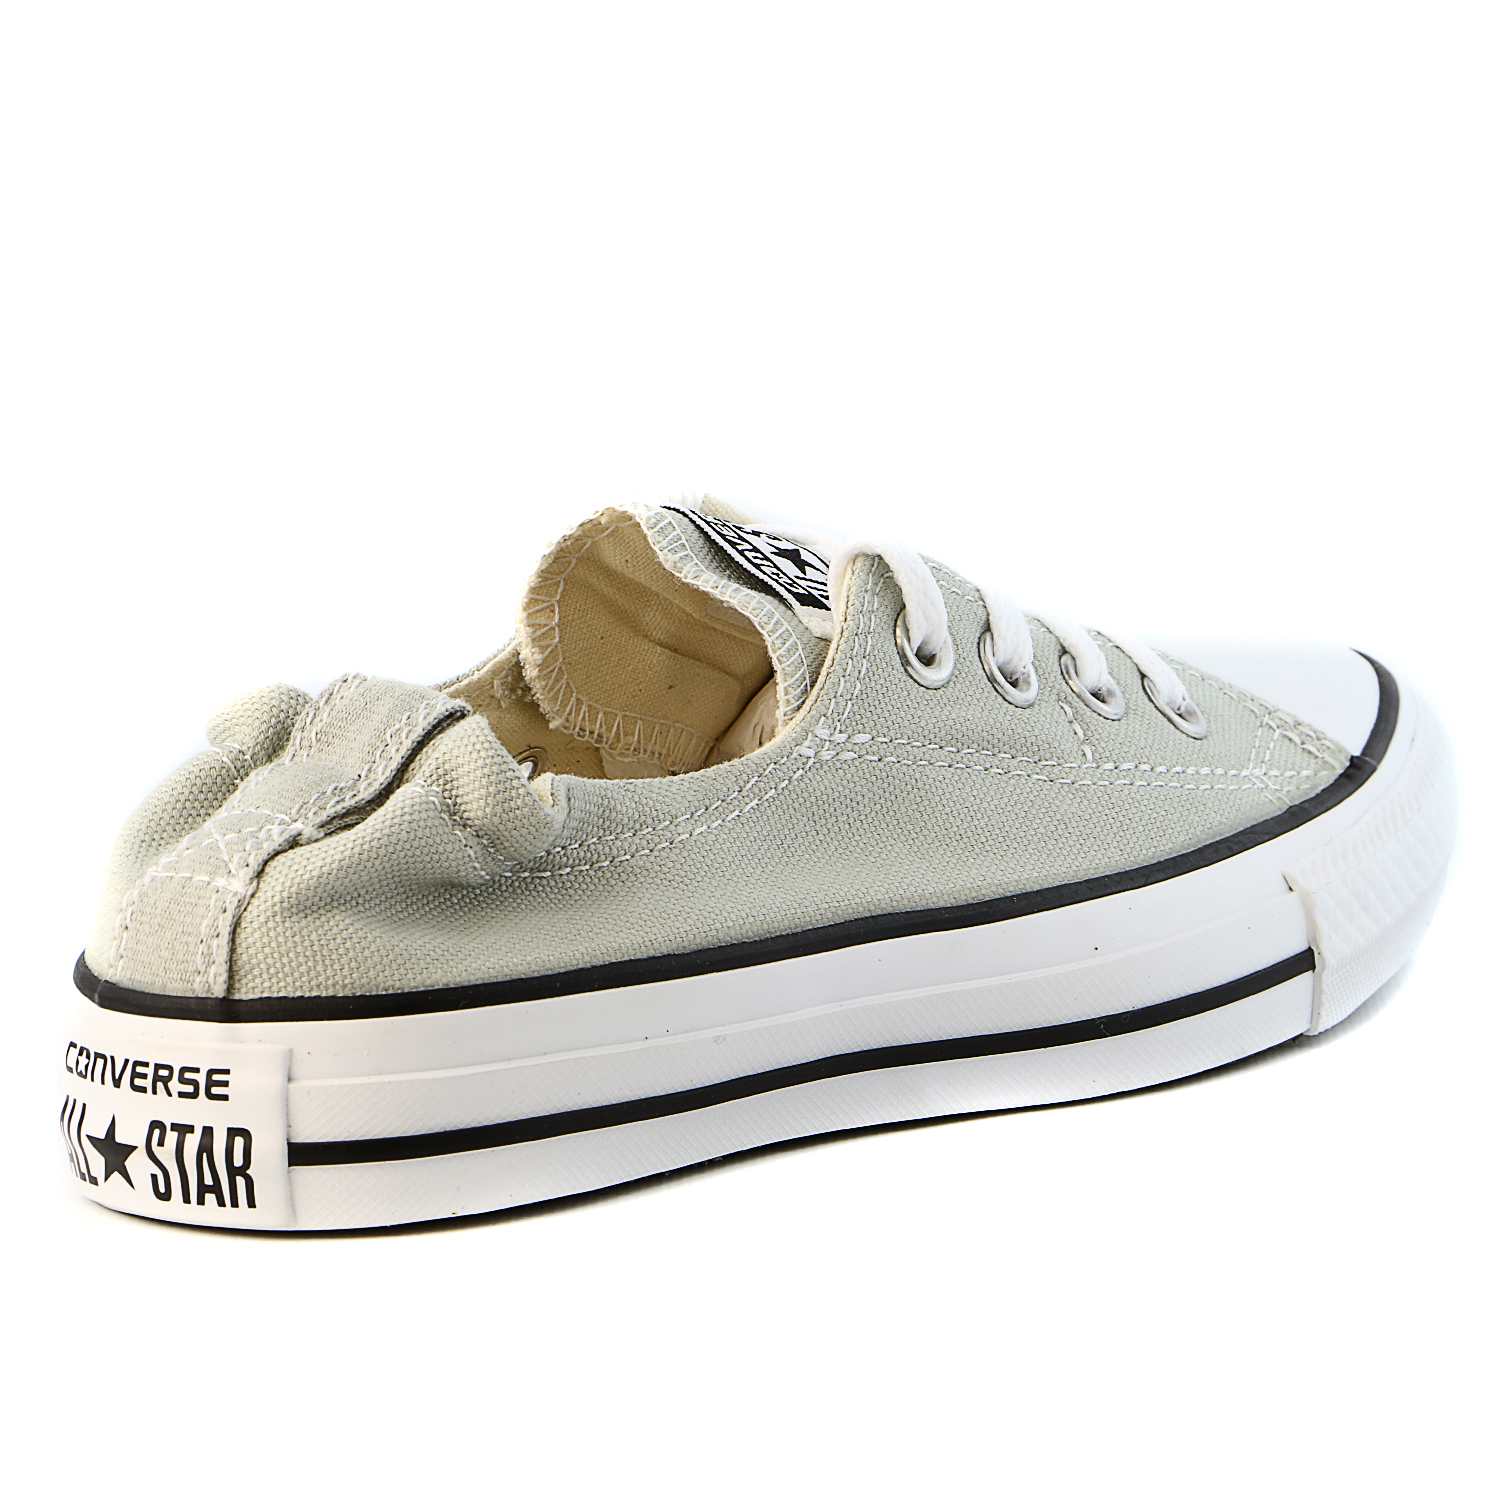 converse chuck taylor all star shoreline gray lace-up sneaker - 8.5 b(m) us